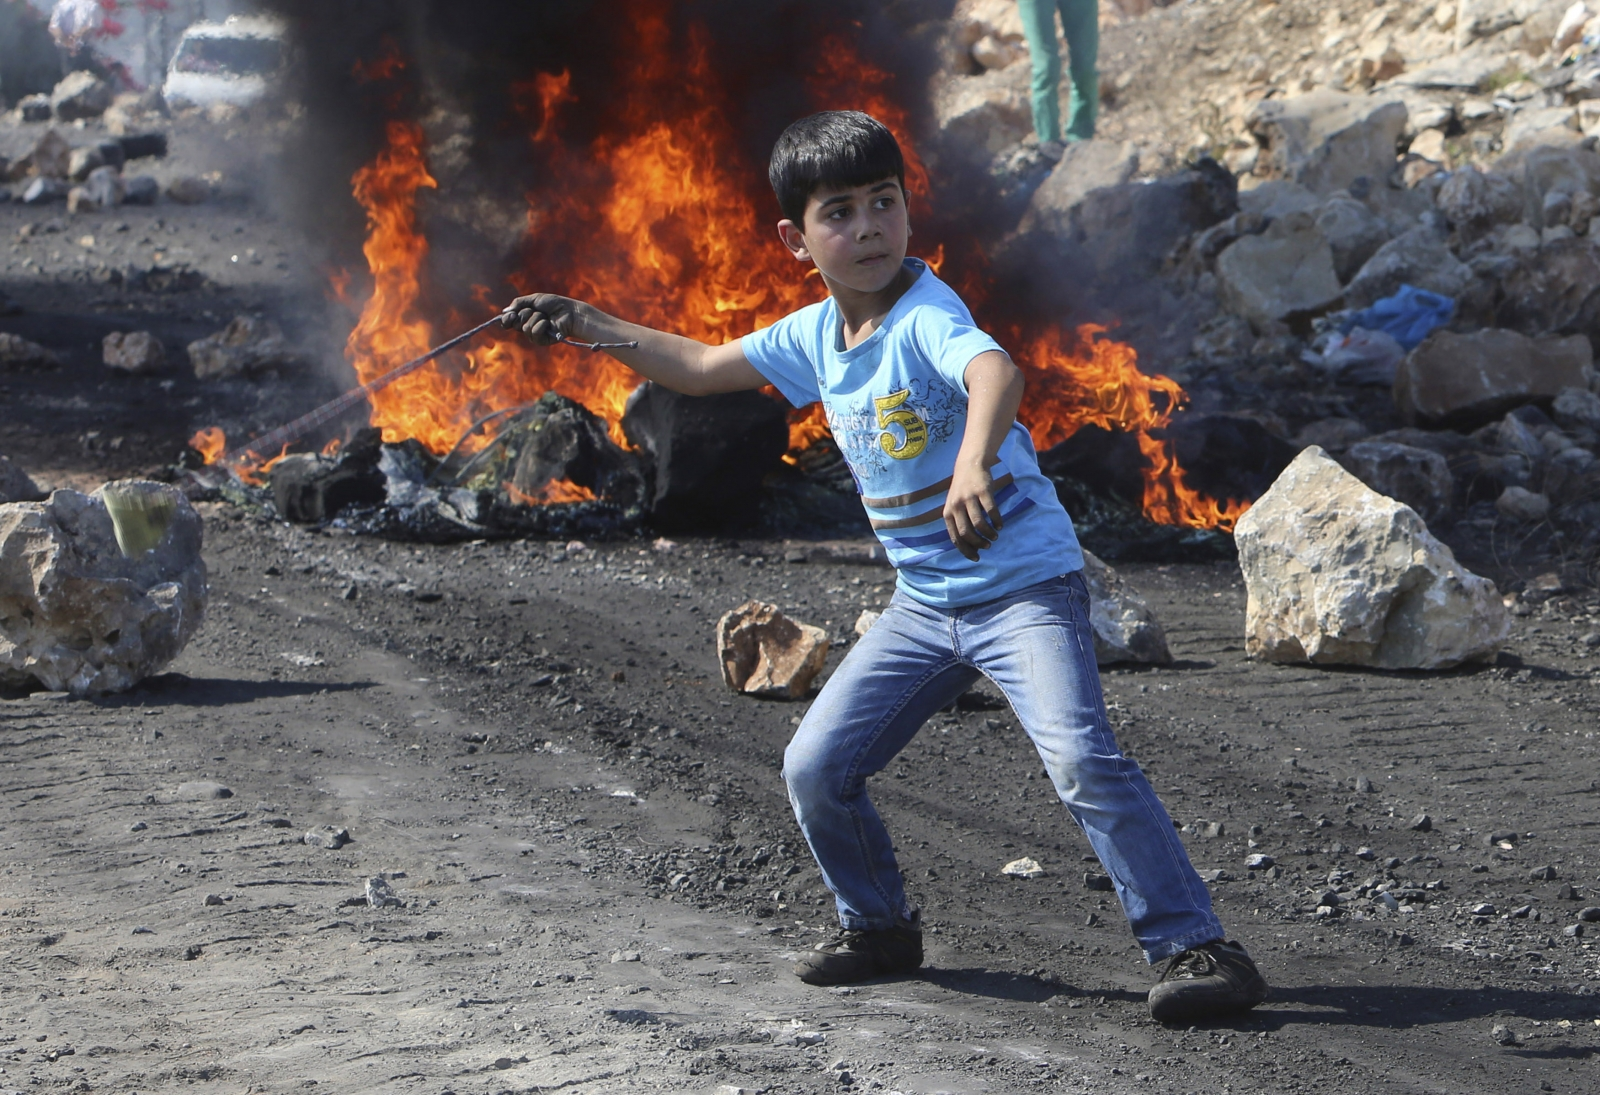 West Bank Clashes